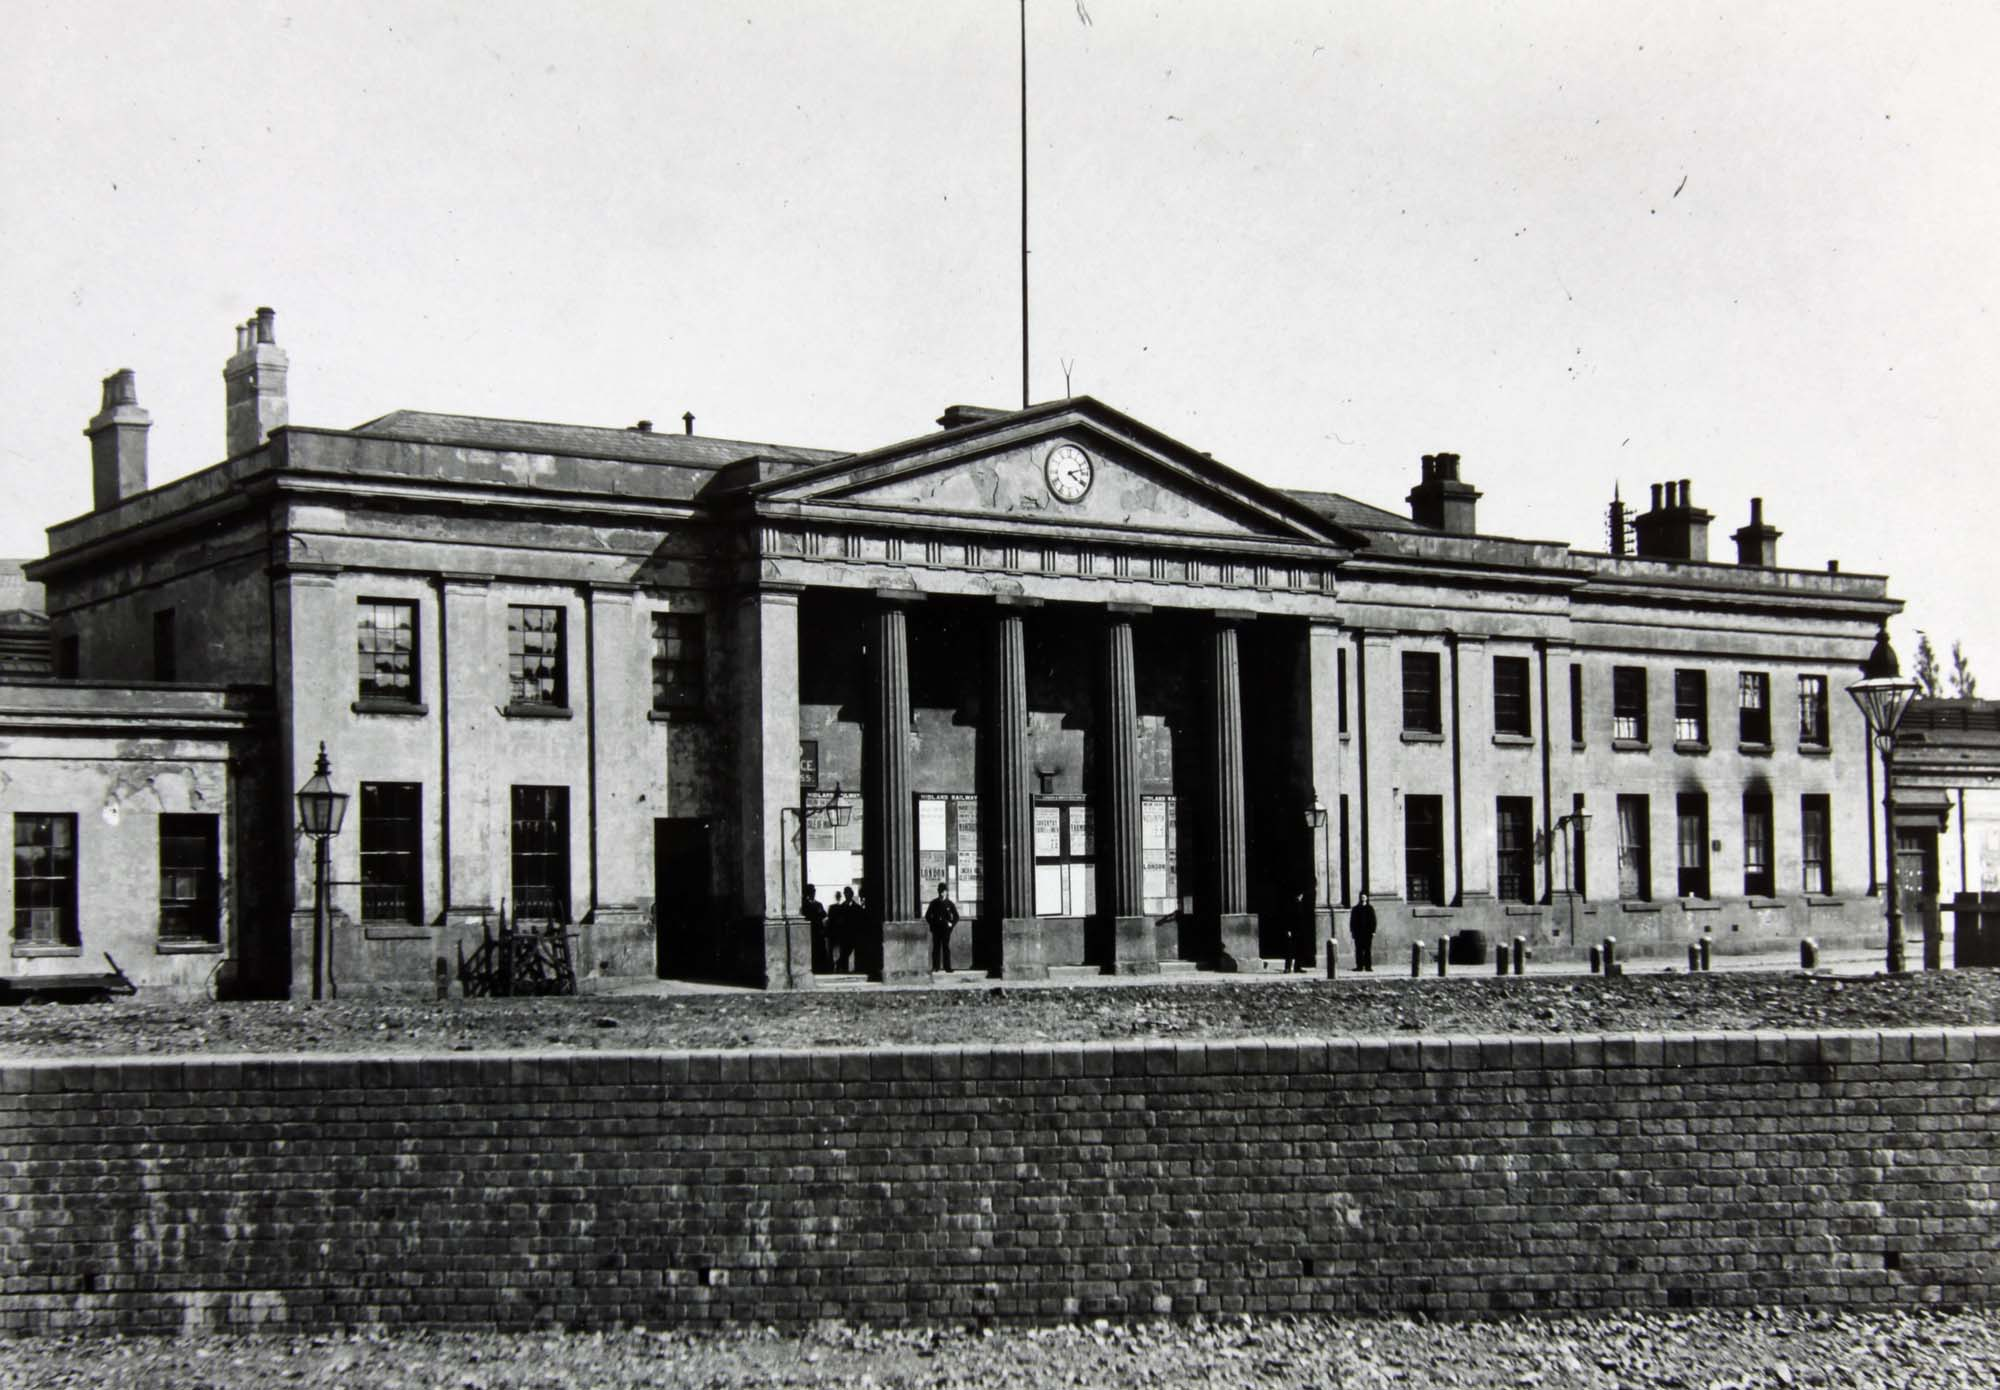 The columned frontage of Campbell Street Station - Leicestershire Record Office